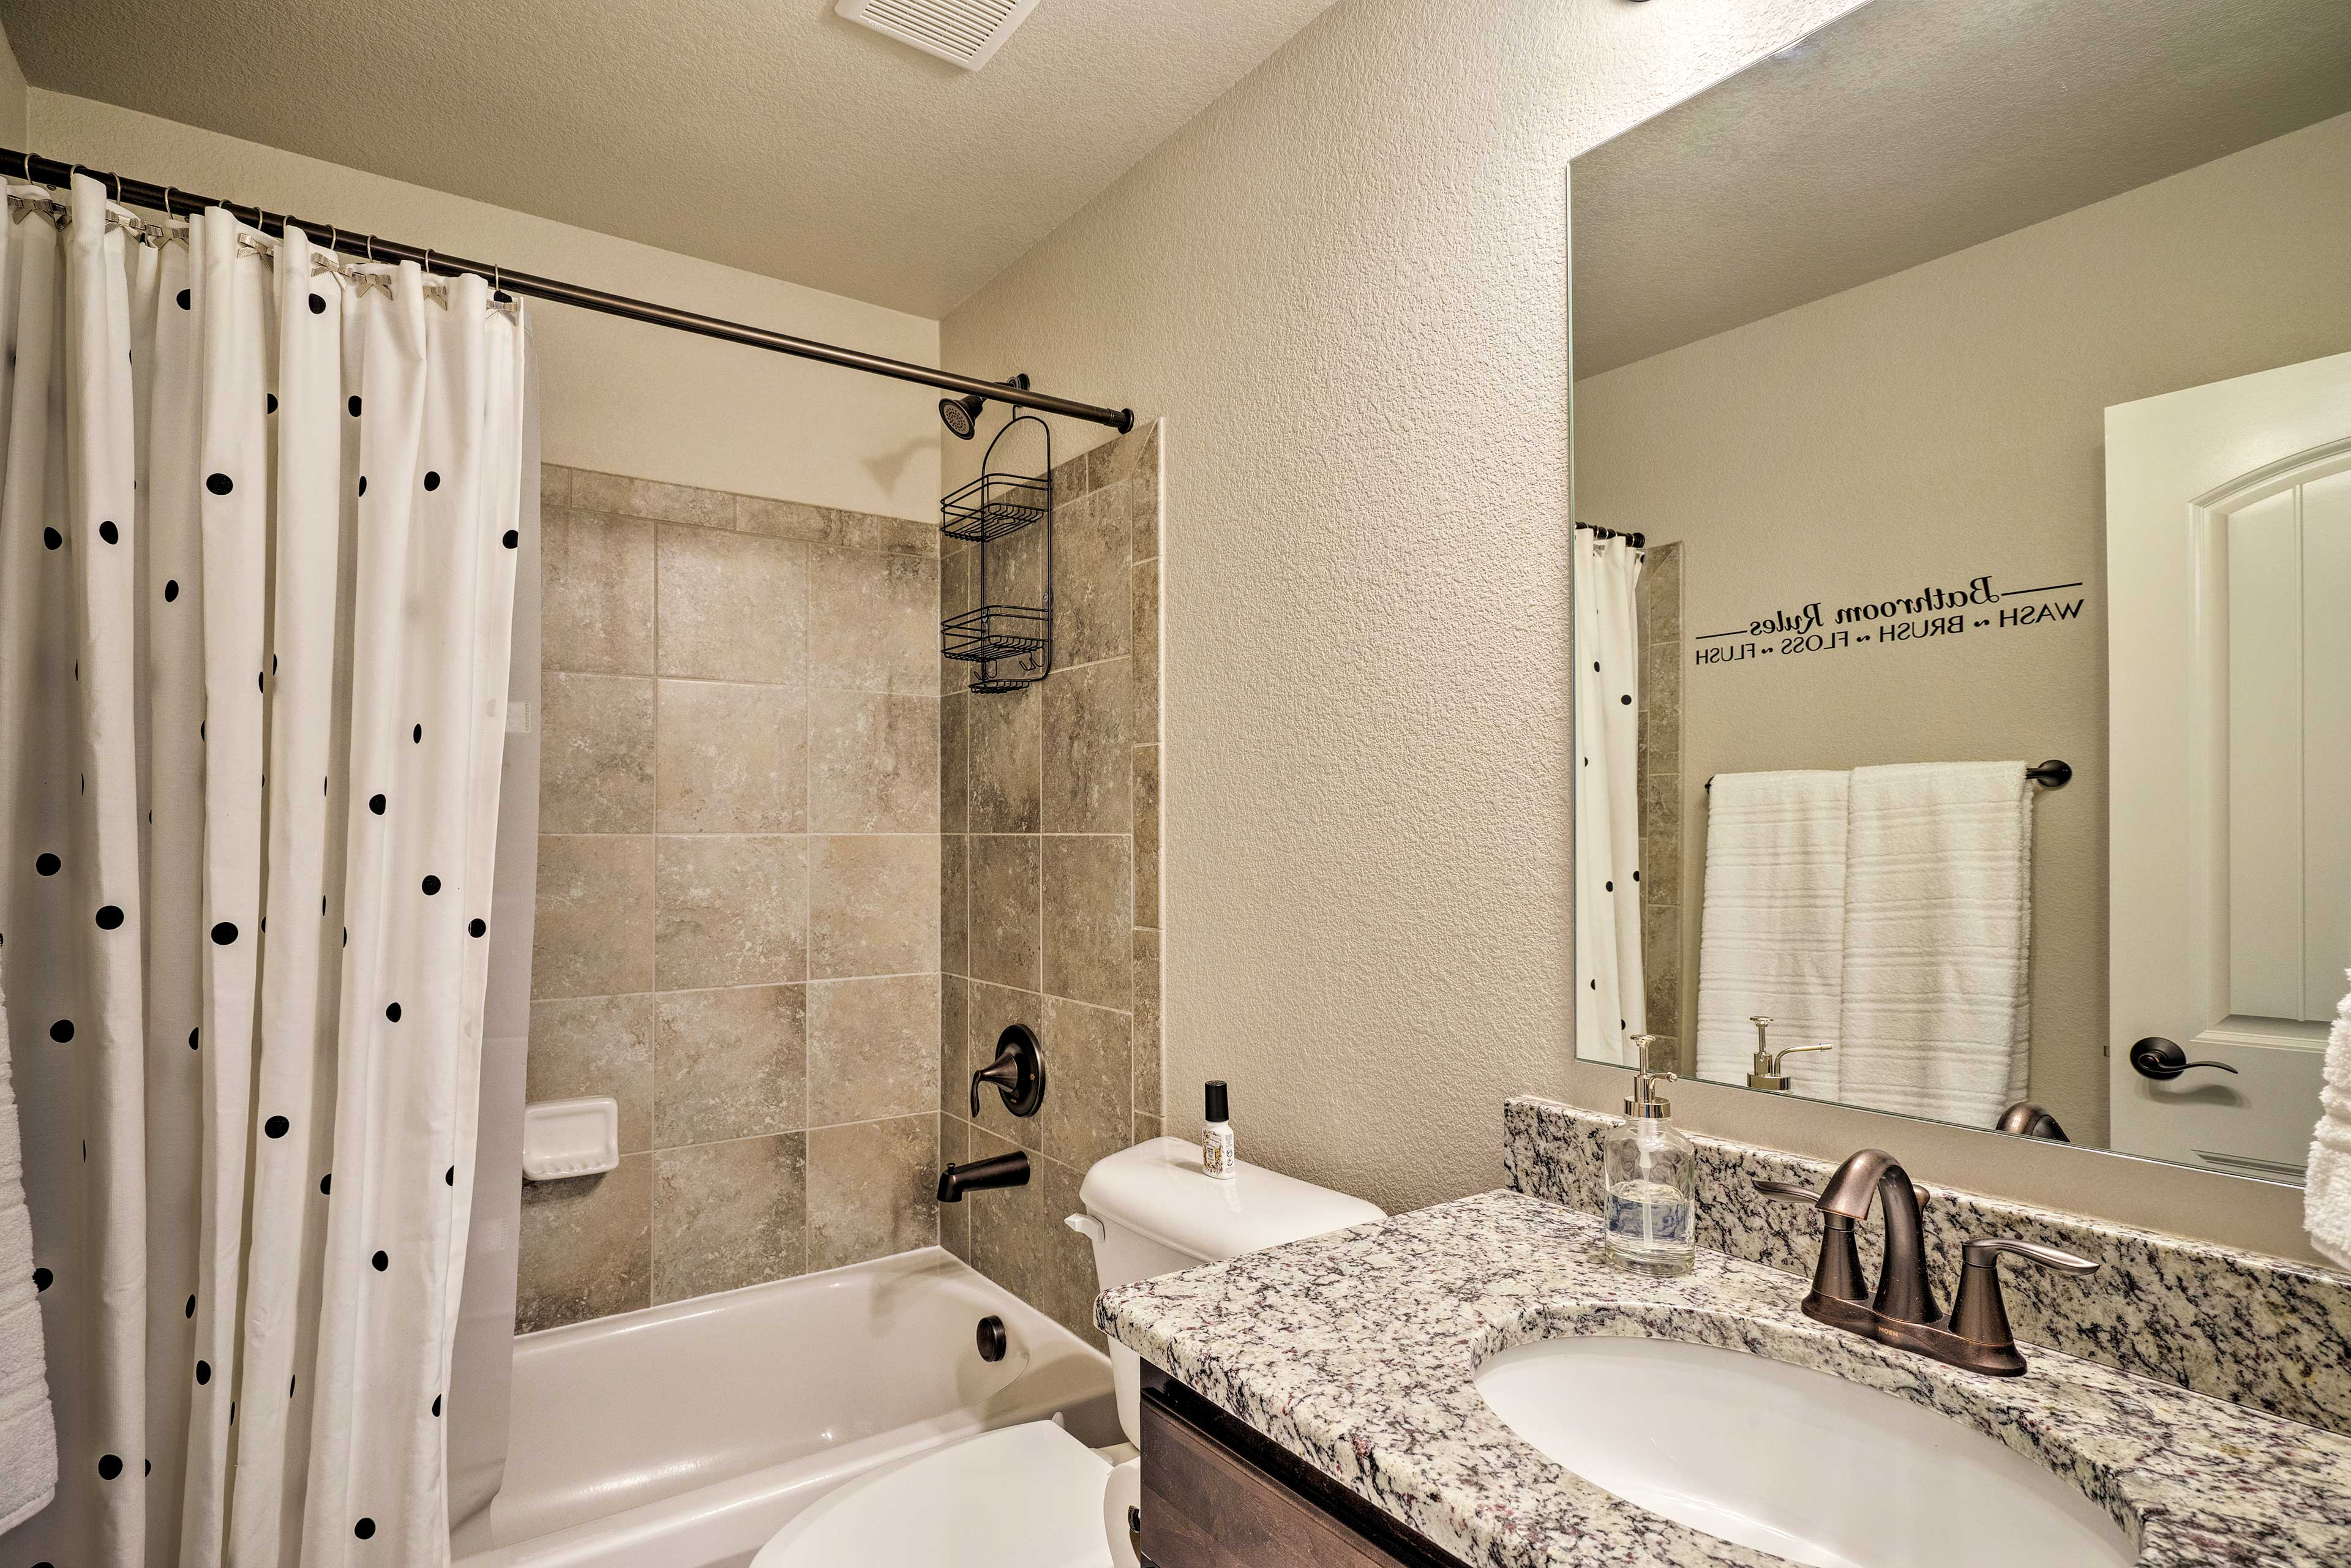 All guests will have access to freshly laundered towels and linens.